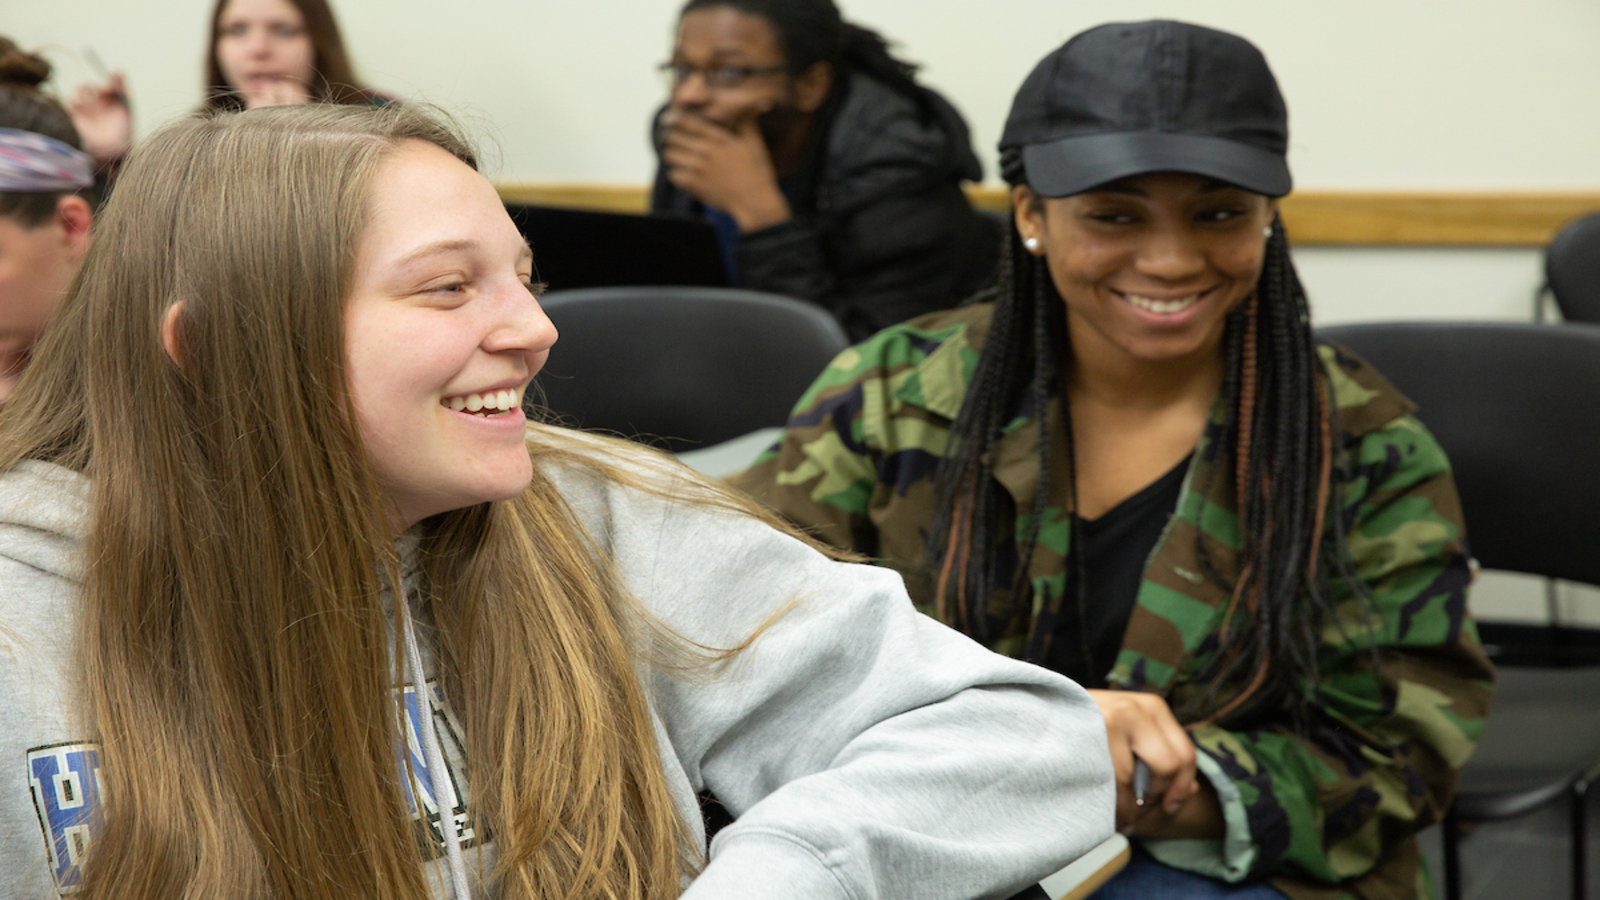 Students engage in lively discussion during Communications class.